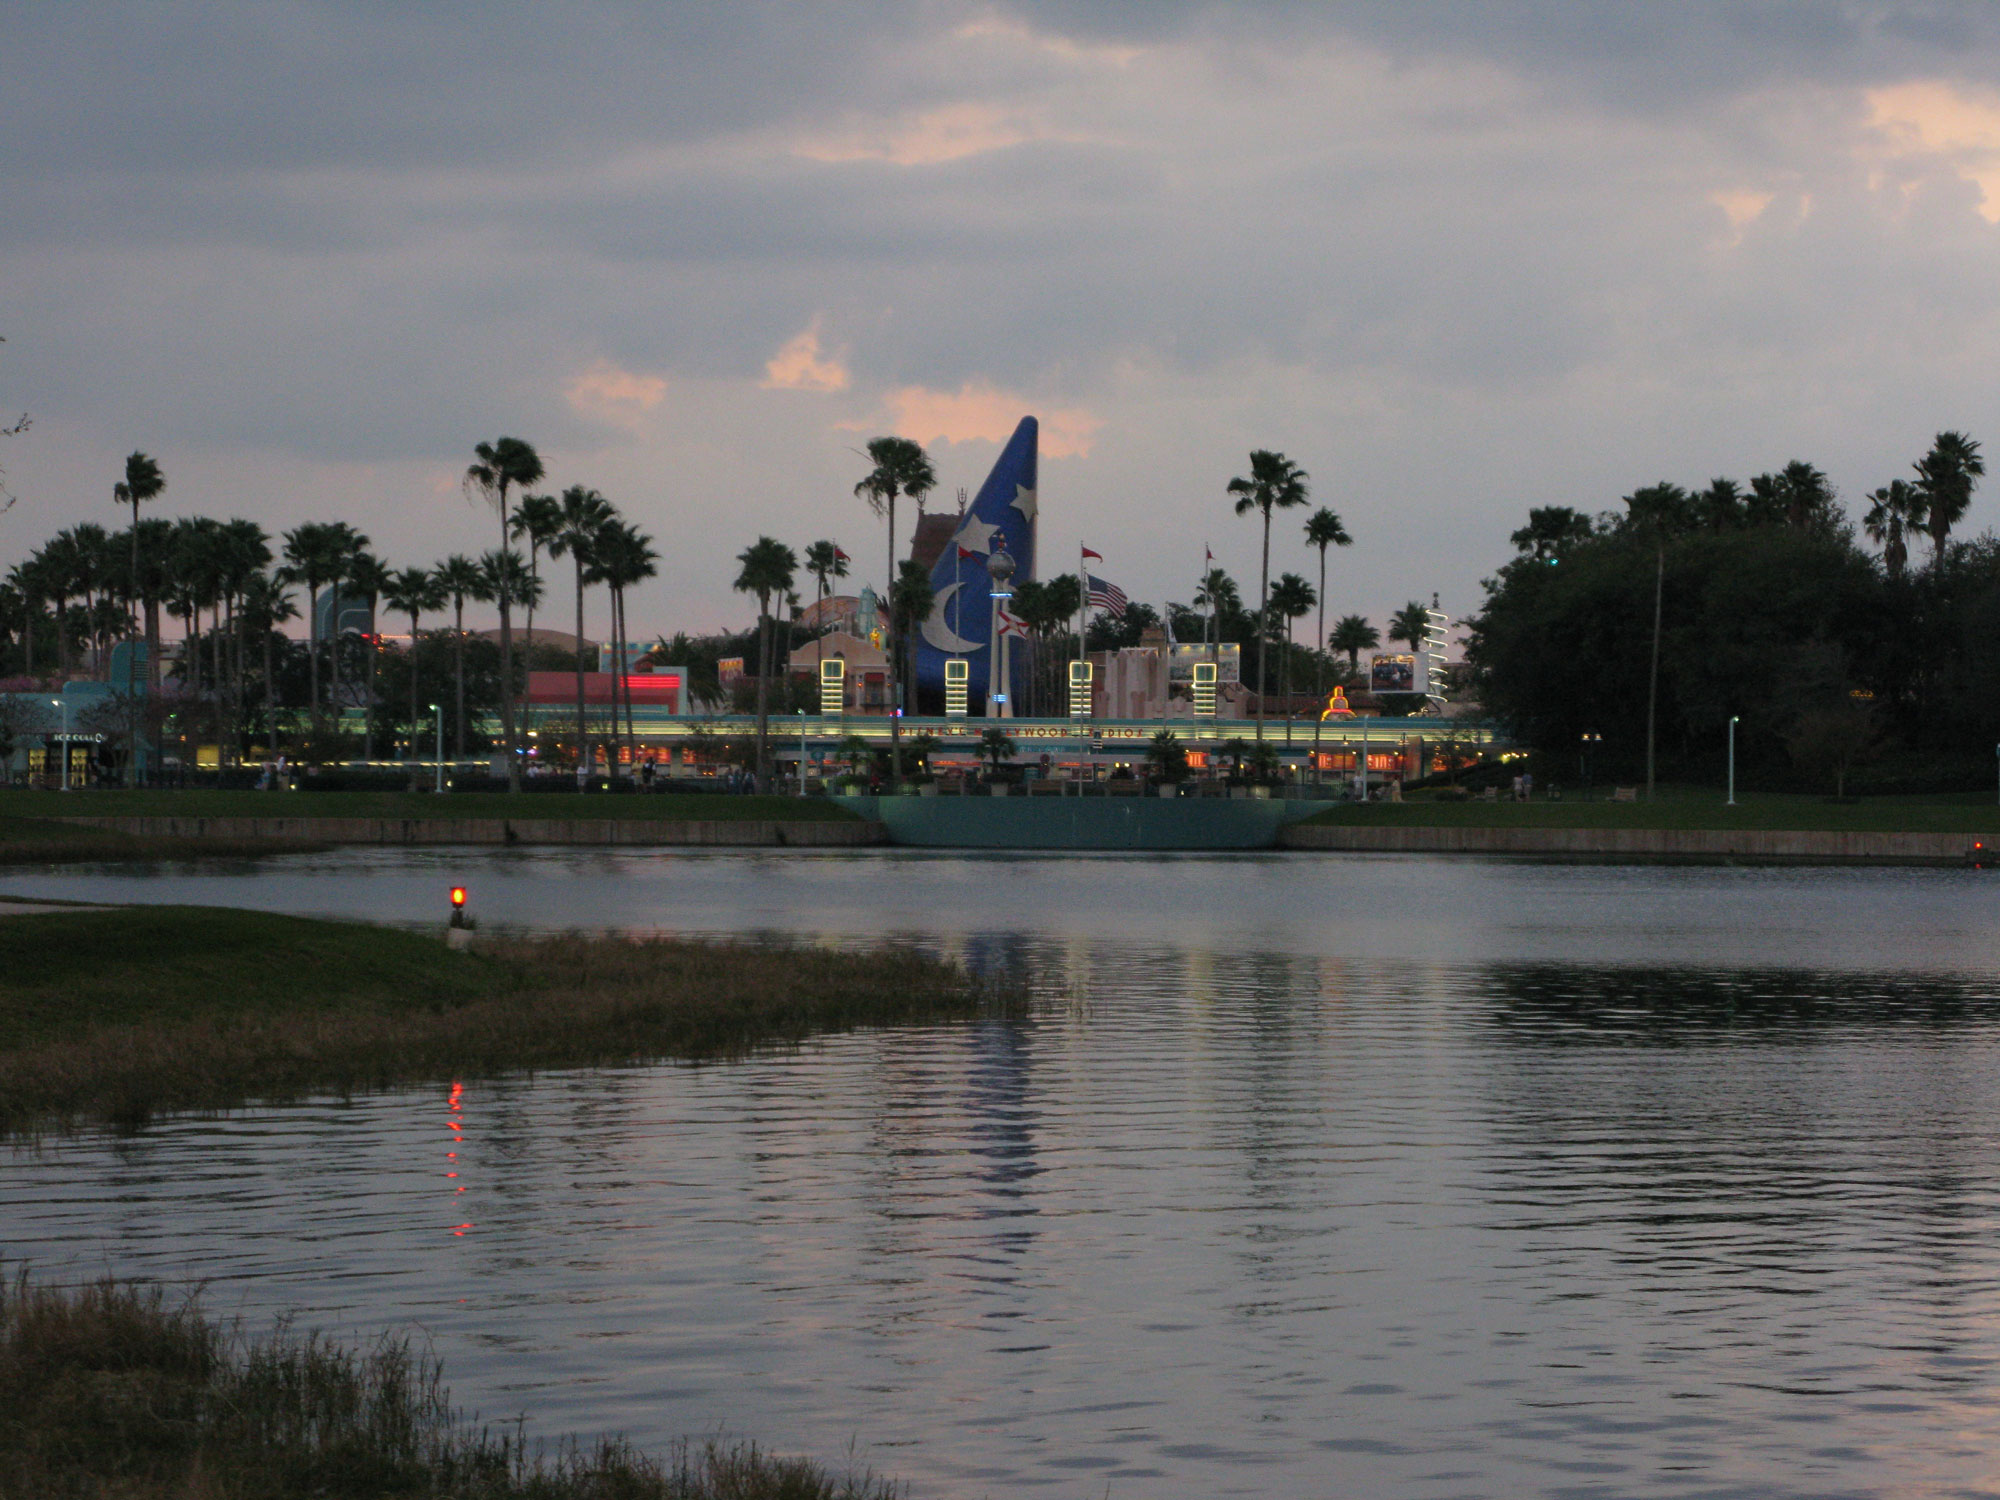 Walkway from Disney Hollywood Studios to Epcot resorts